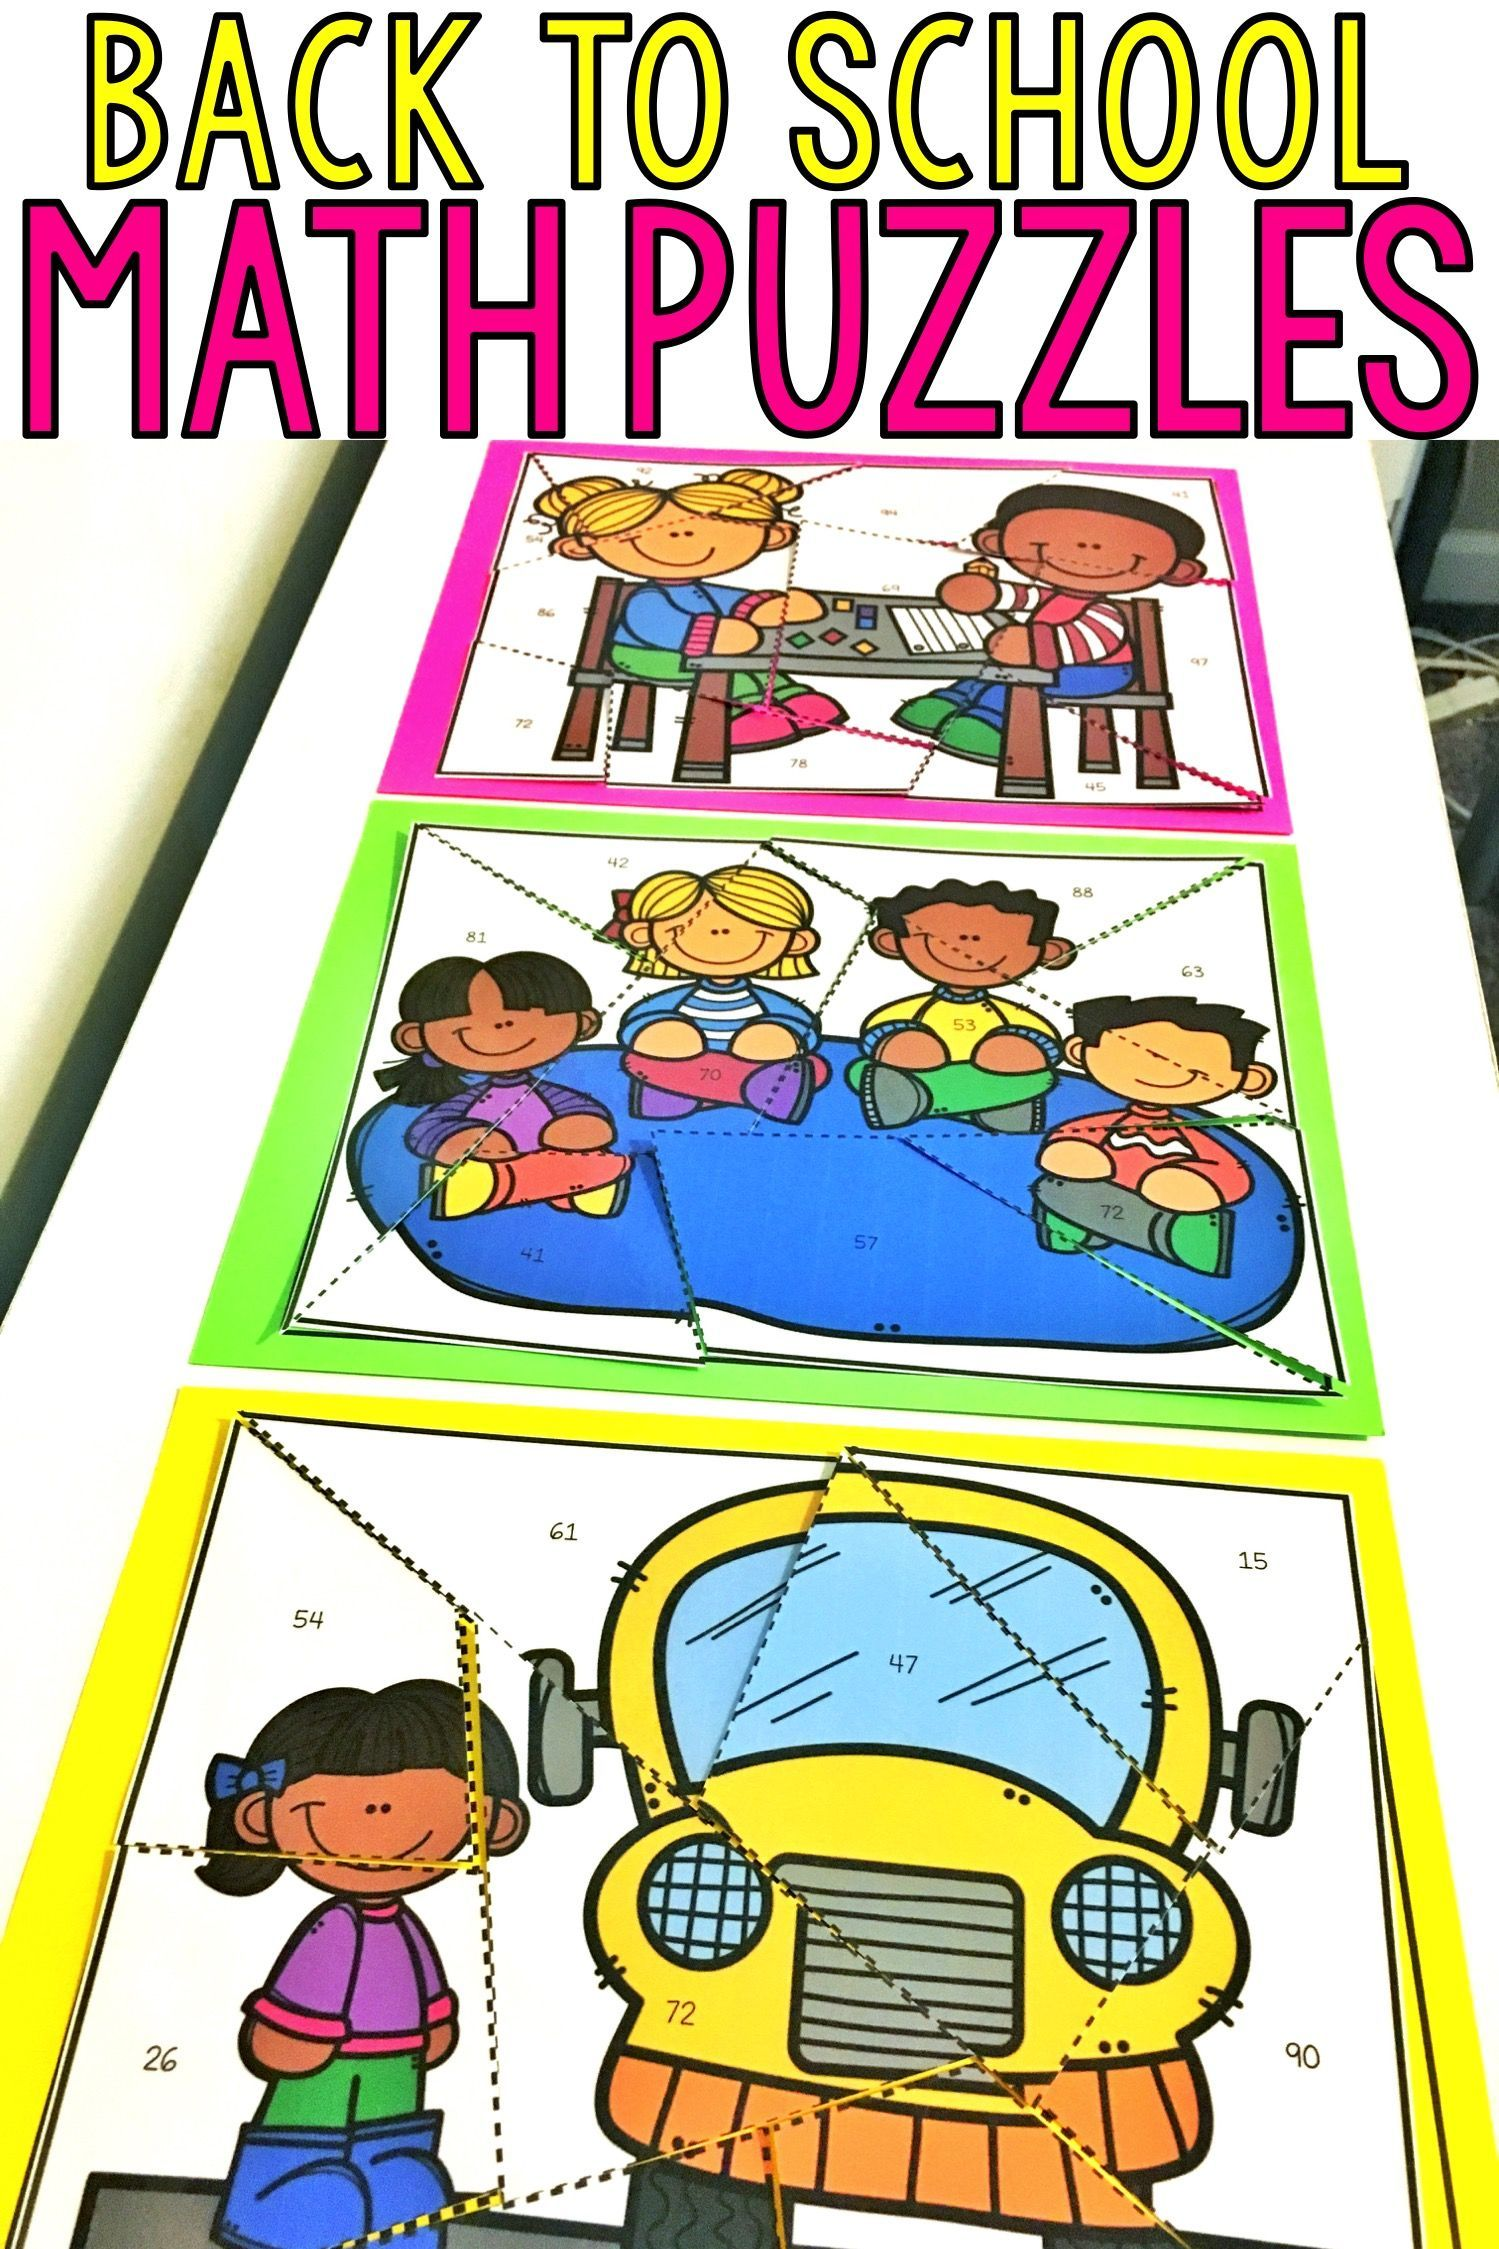 Math Puzzles For Back To School